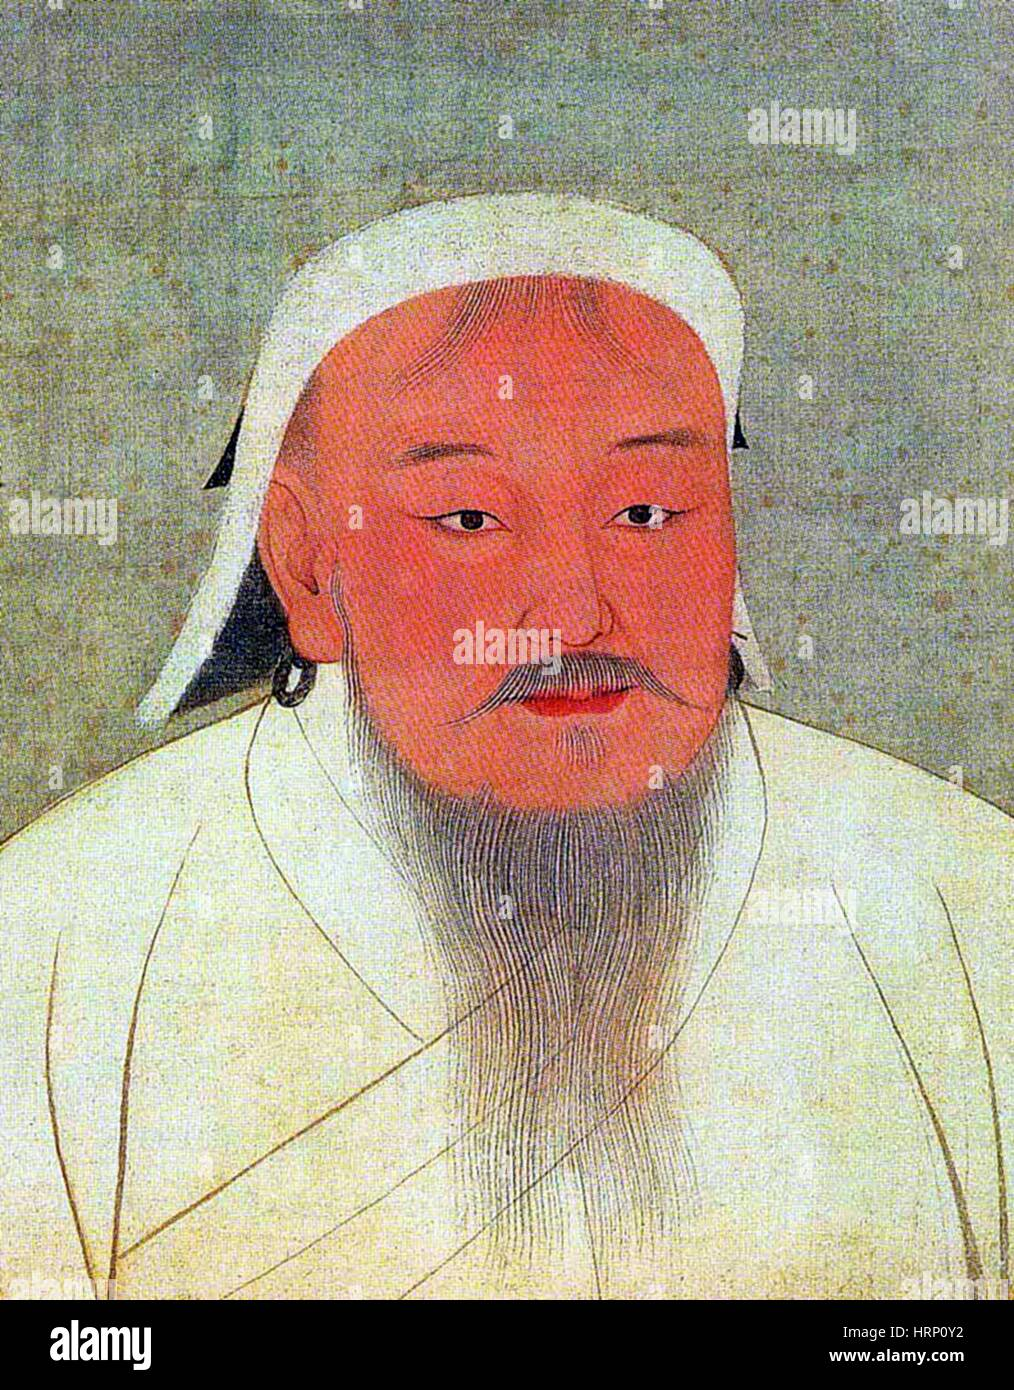 Genghis Khan, Supreme Emperor of the Mongols - Stock Image